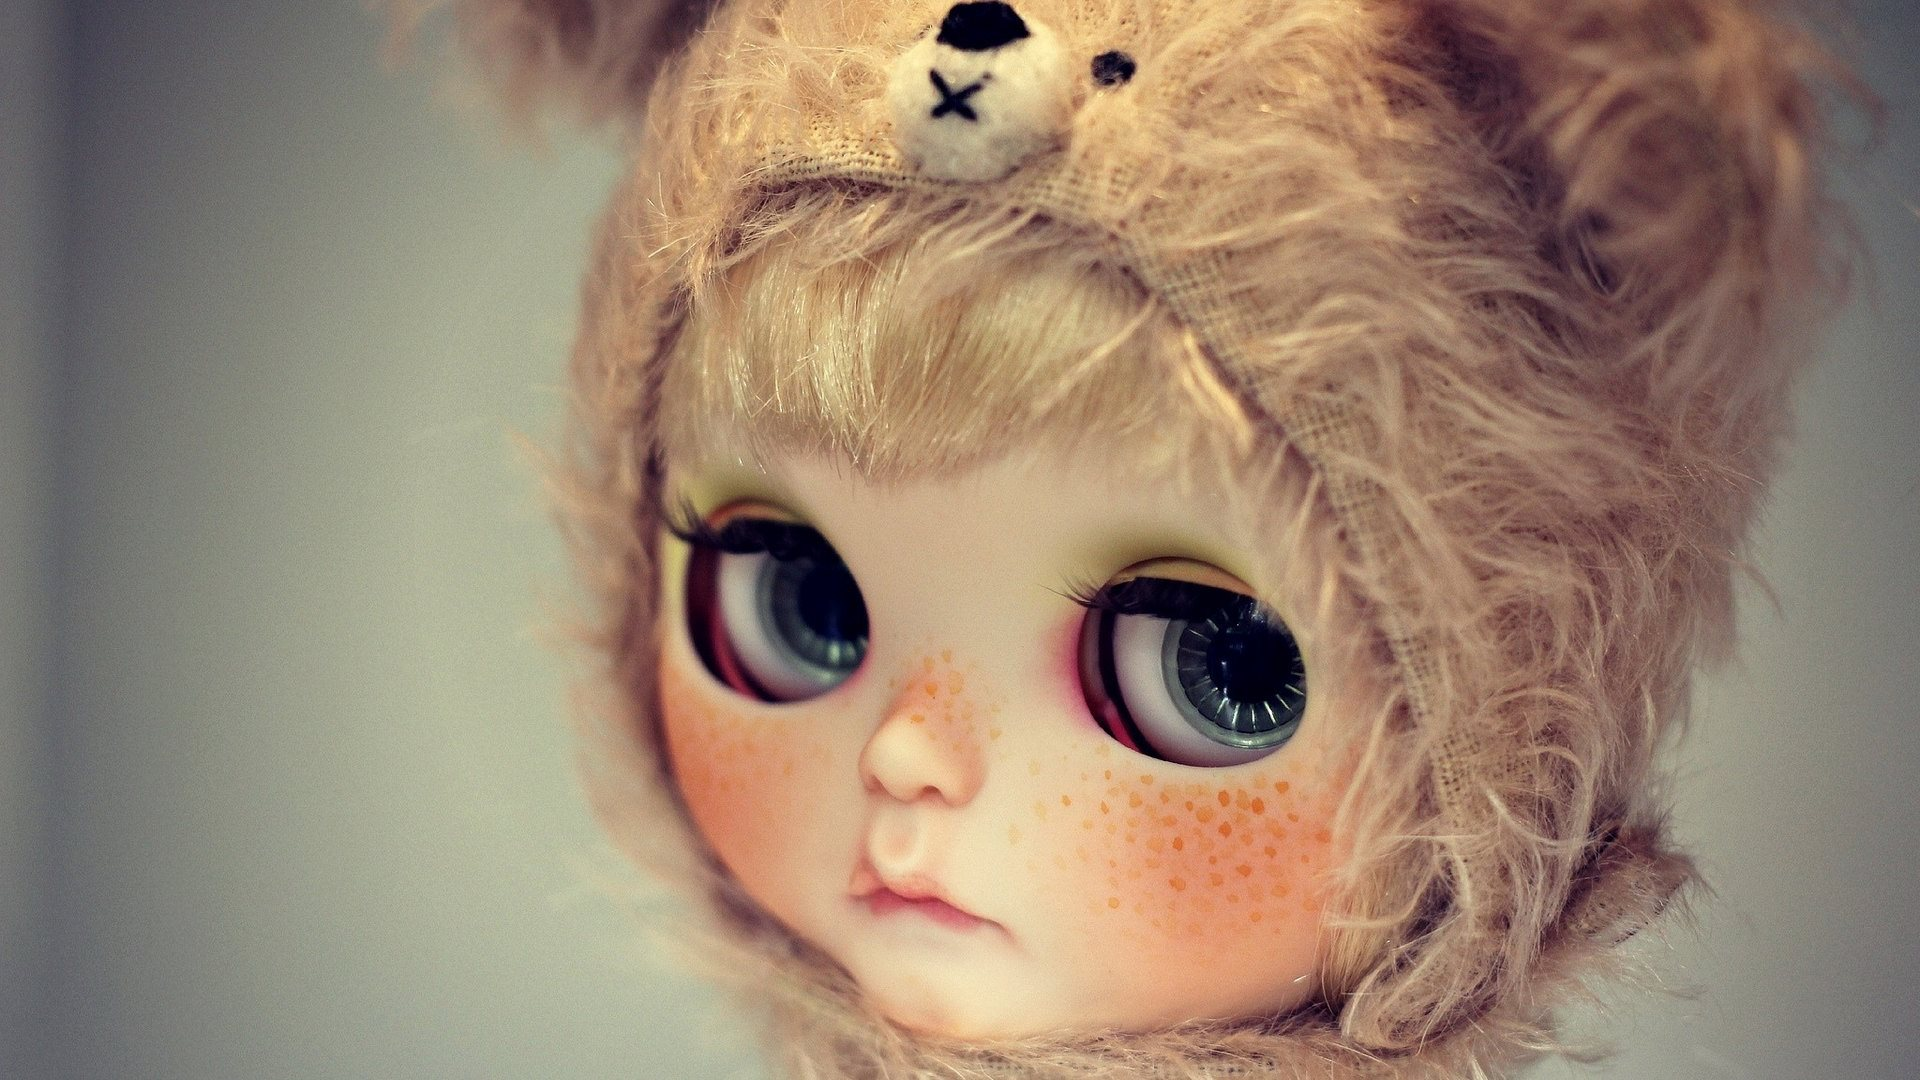 Beautiful Eyes of Doll HD Wallpapers 1920x1080